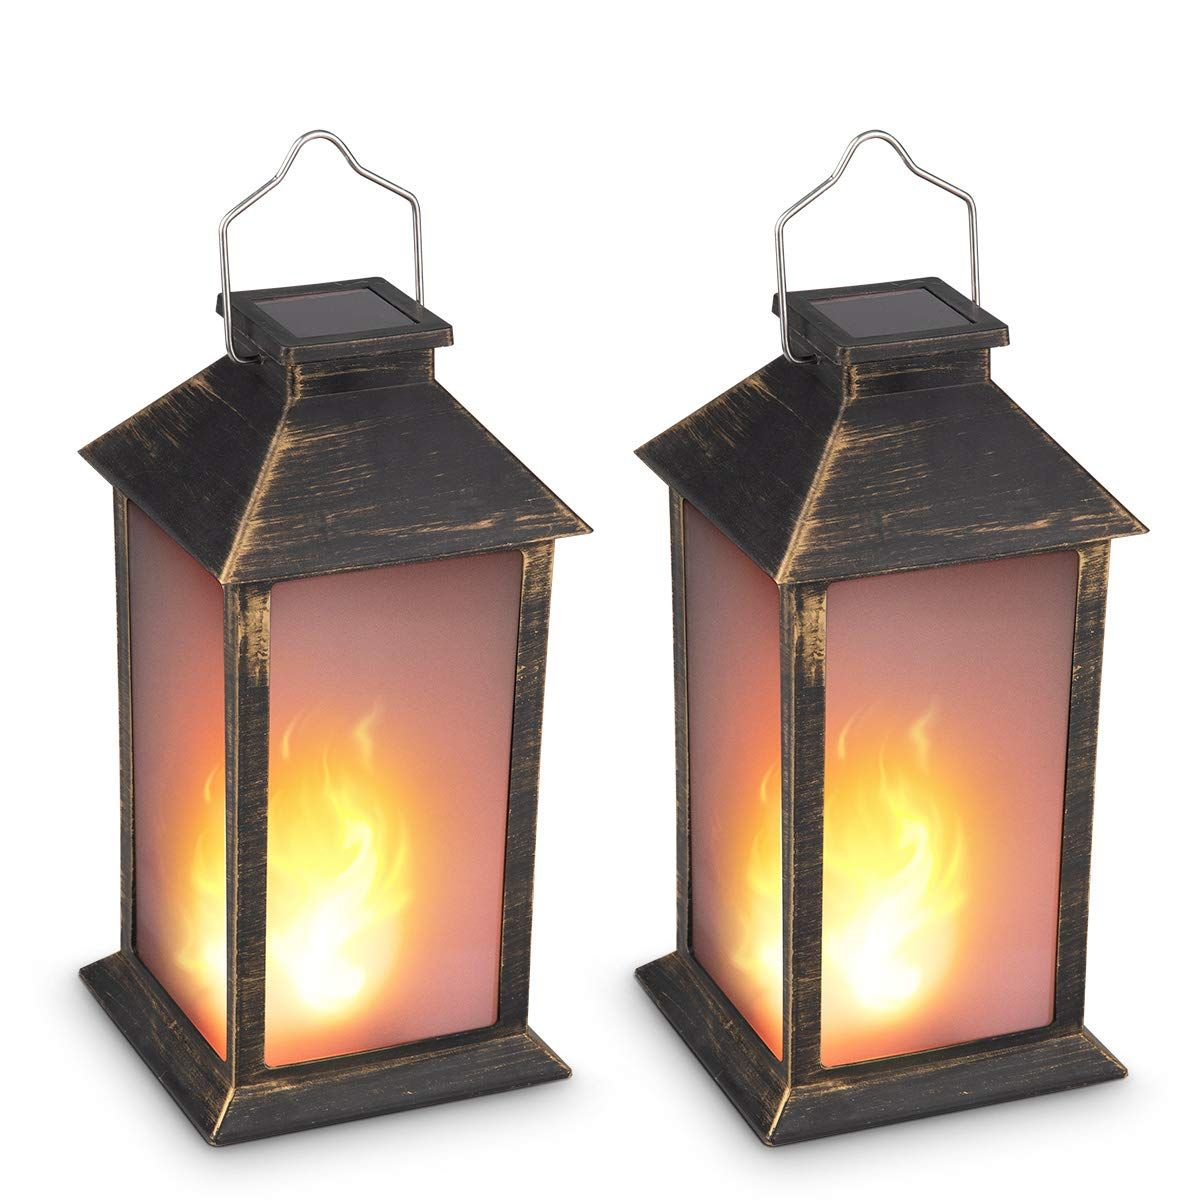 13 Vintage Style Solar Powered Candle Lantern Metallic Coating Black Plastic Solar Garden Lig In 2020 Solar Hanging Lanterns Solar Lights Garden Lantern Candle Decor